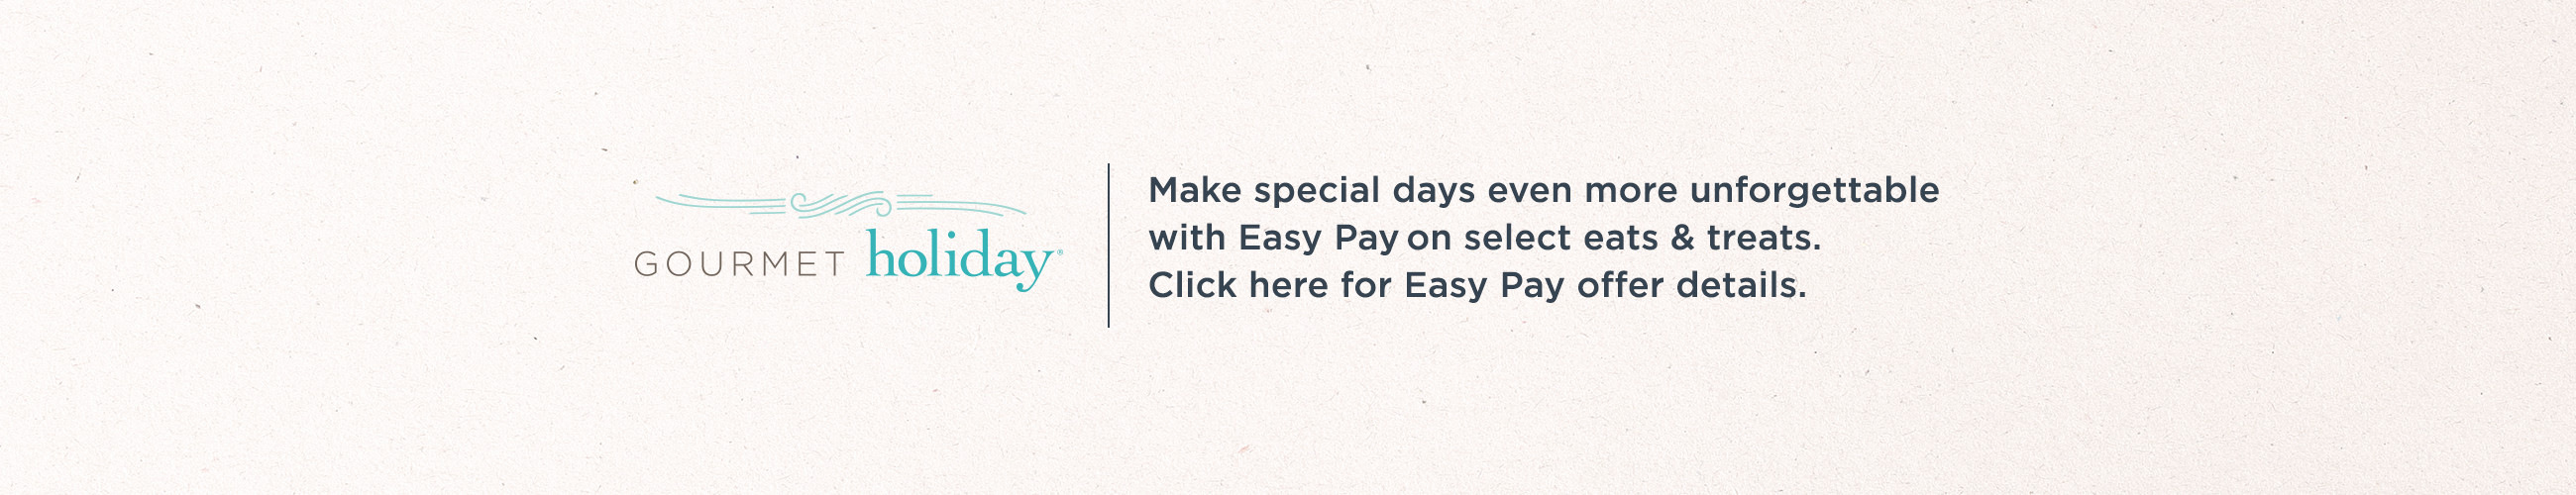 Gourmet Holiday® Make special days even more unforgettable with Easy Pay® on select eats & treats.  Click here for Easy Pay offer details.